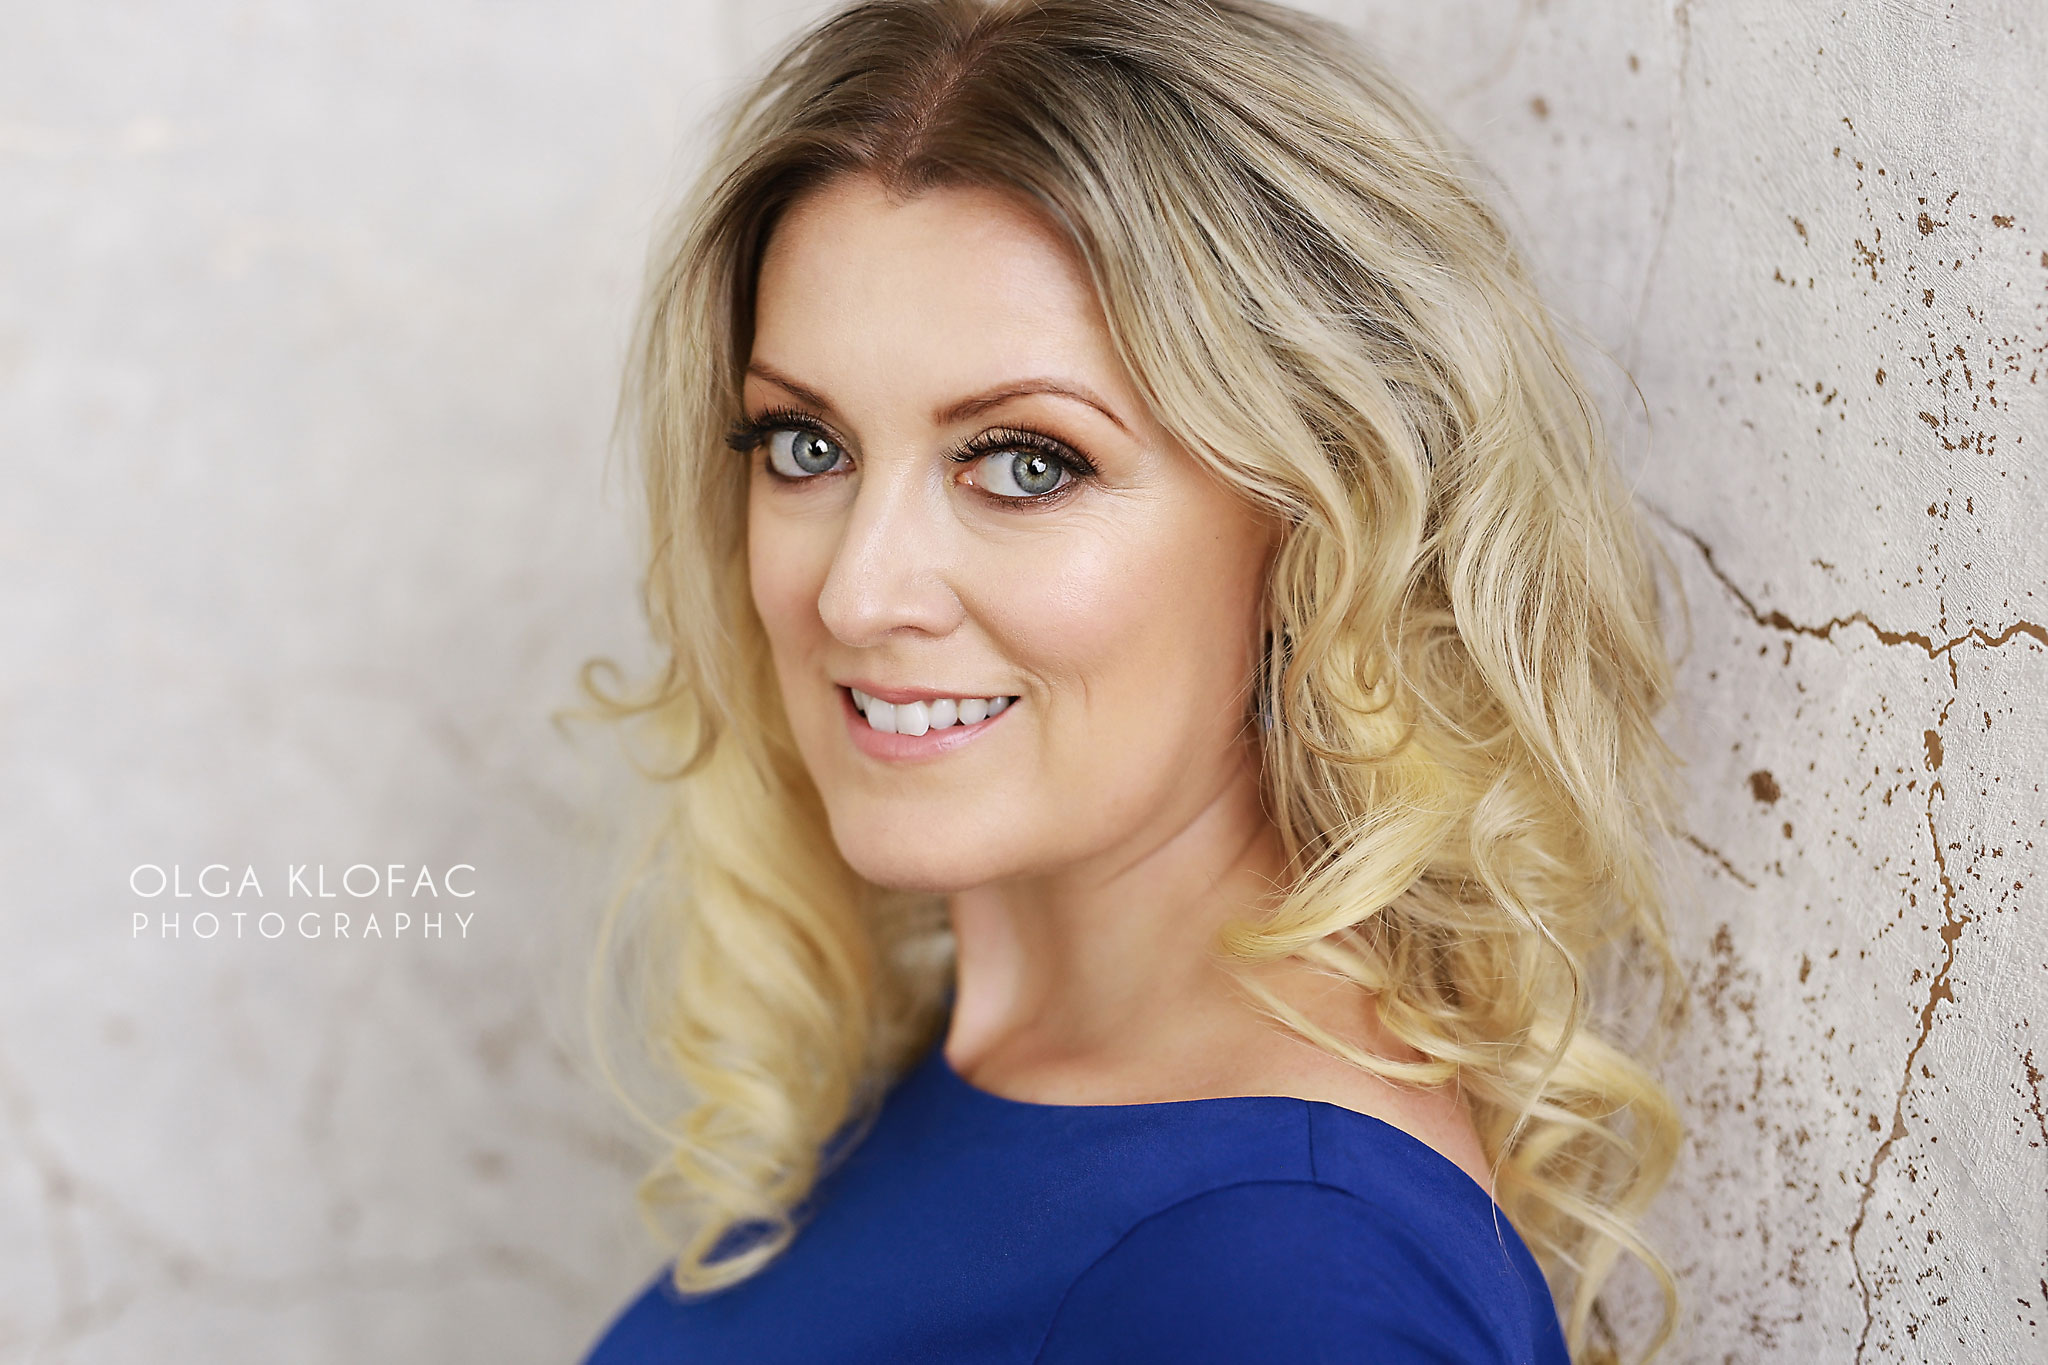 olga klofac photography, portrait photographer Mayo Sligo Roscommon Galway Leitrim, professional headshots, women portraits